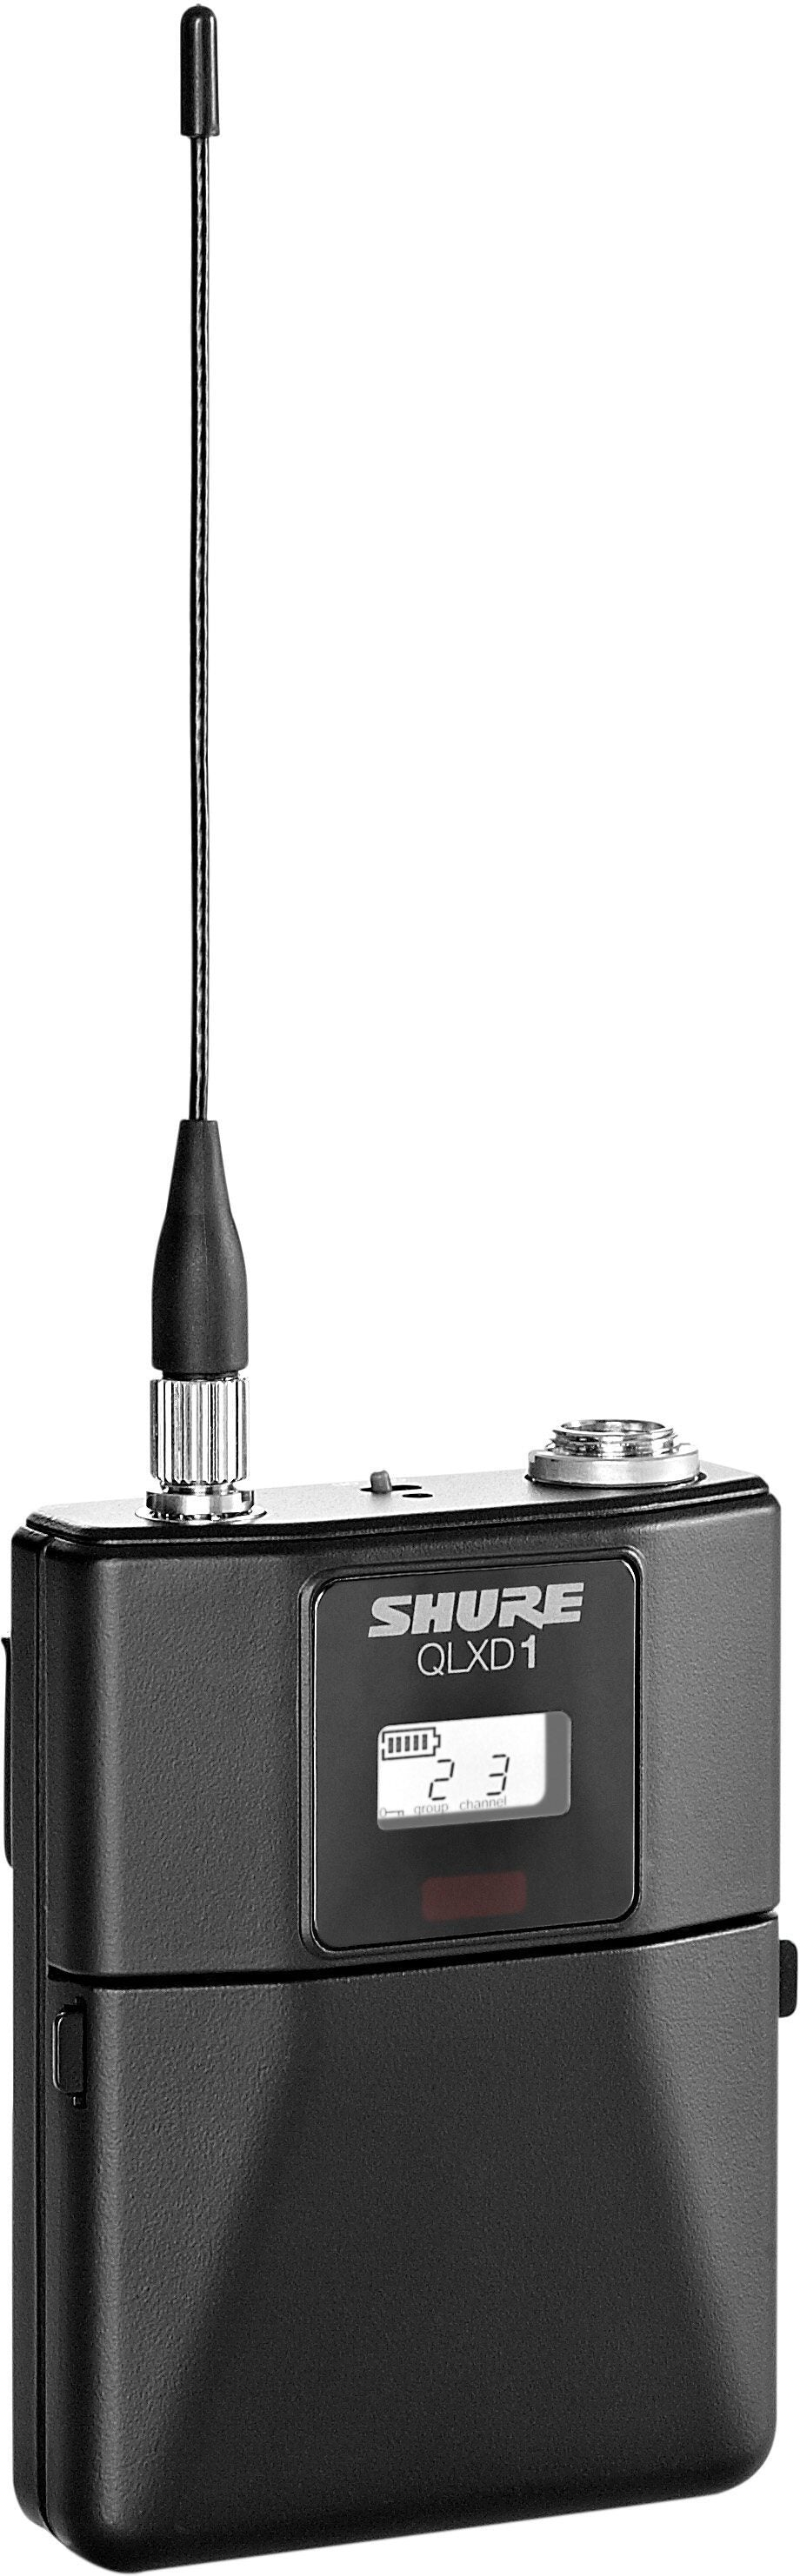 Shure QLXD1485 Wireless System with WL185 Lavalier Microphone, Band G50 (470 - 534 MHz)